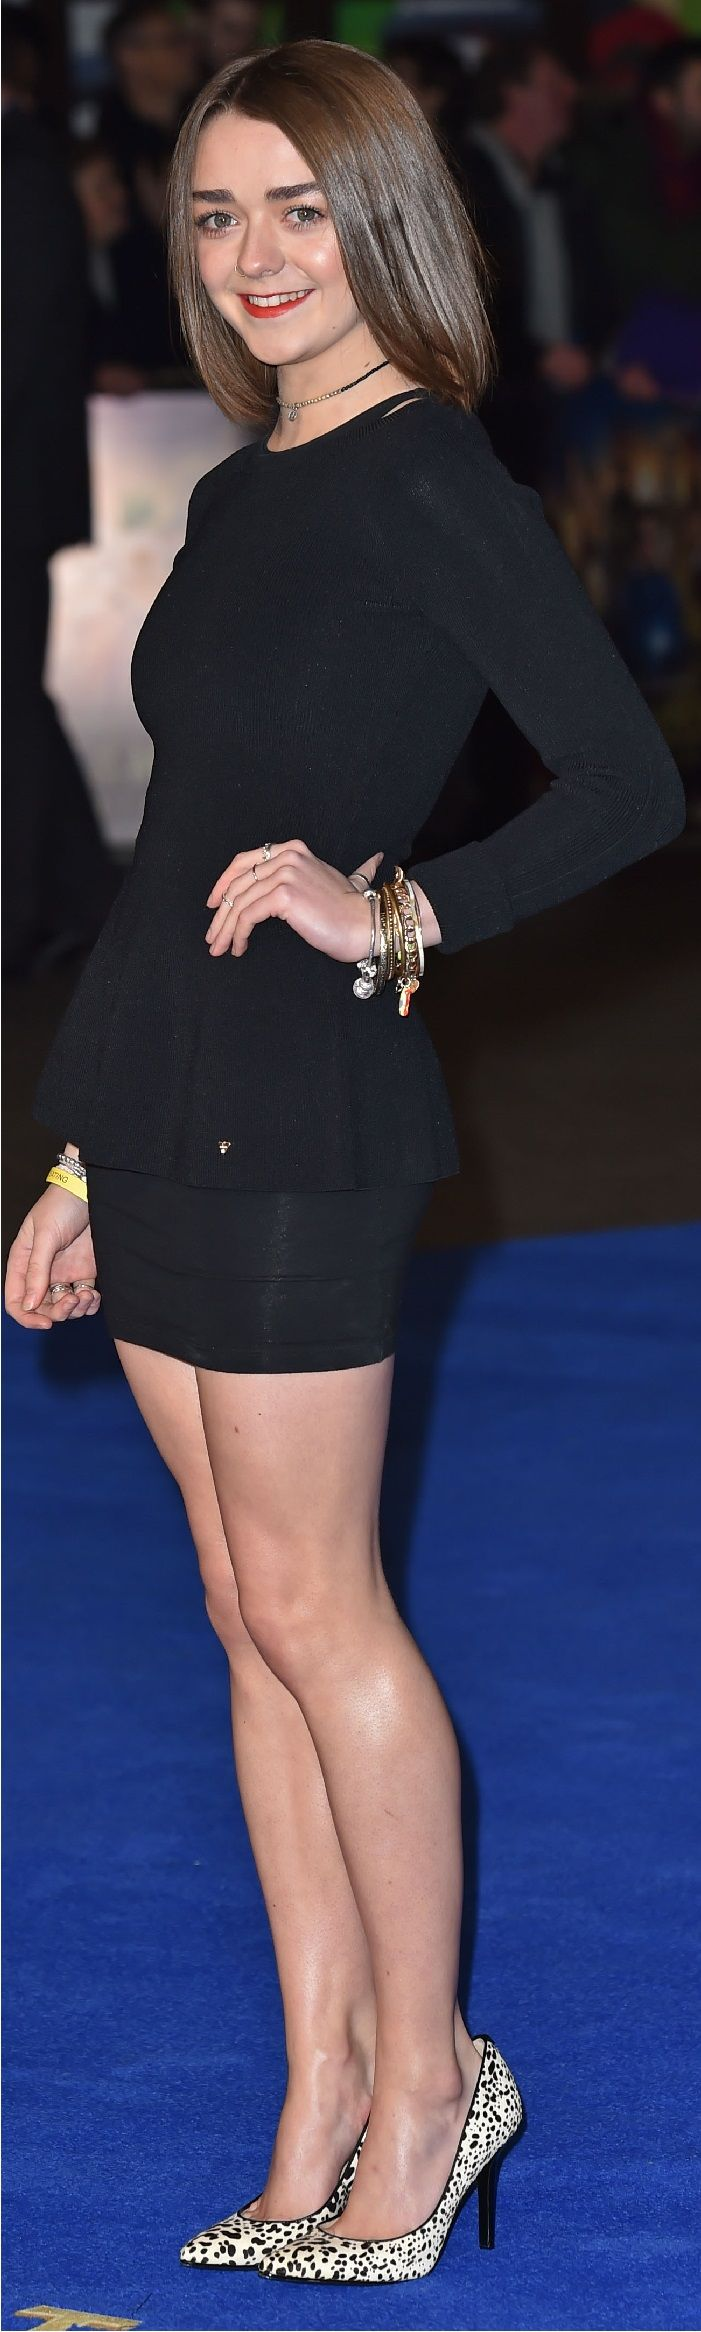 Maisie Williams has an incredible figure